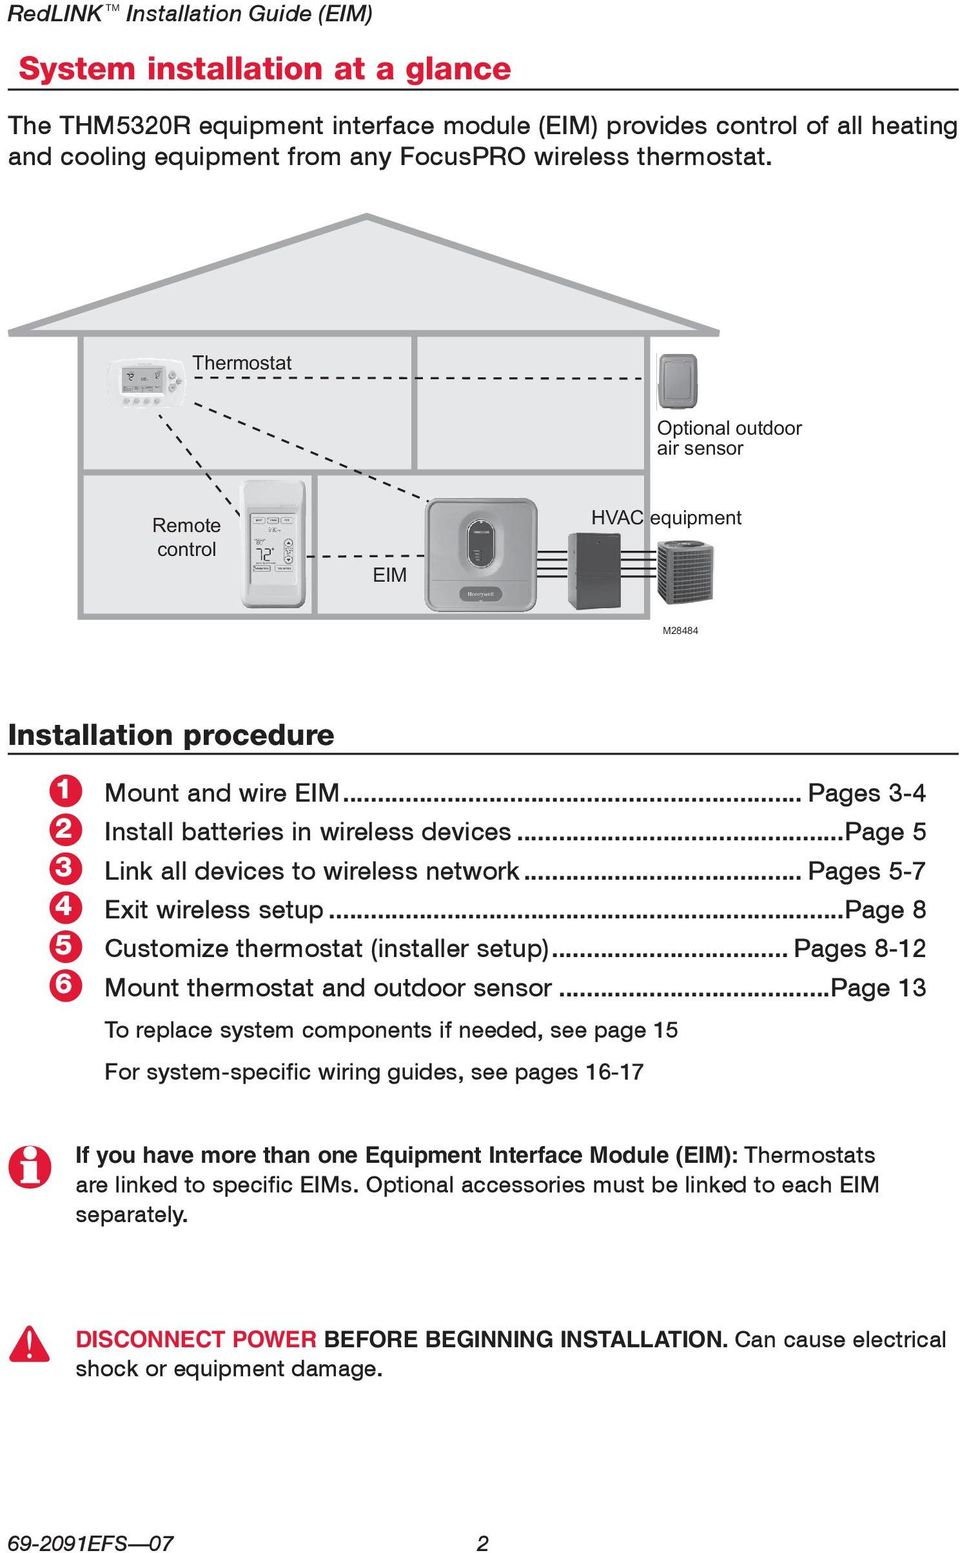 System Installation Guide Pdf Mm 2 58t Wiring Diagram For Thermostat Page 5 Link All Devices To Wireless Network Pages